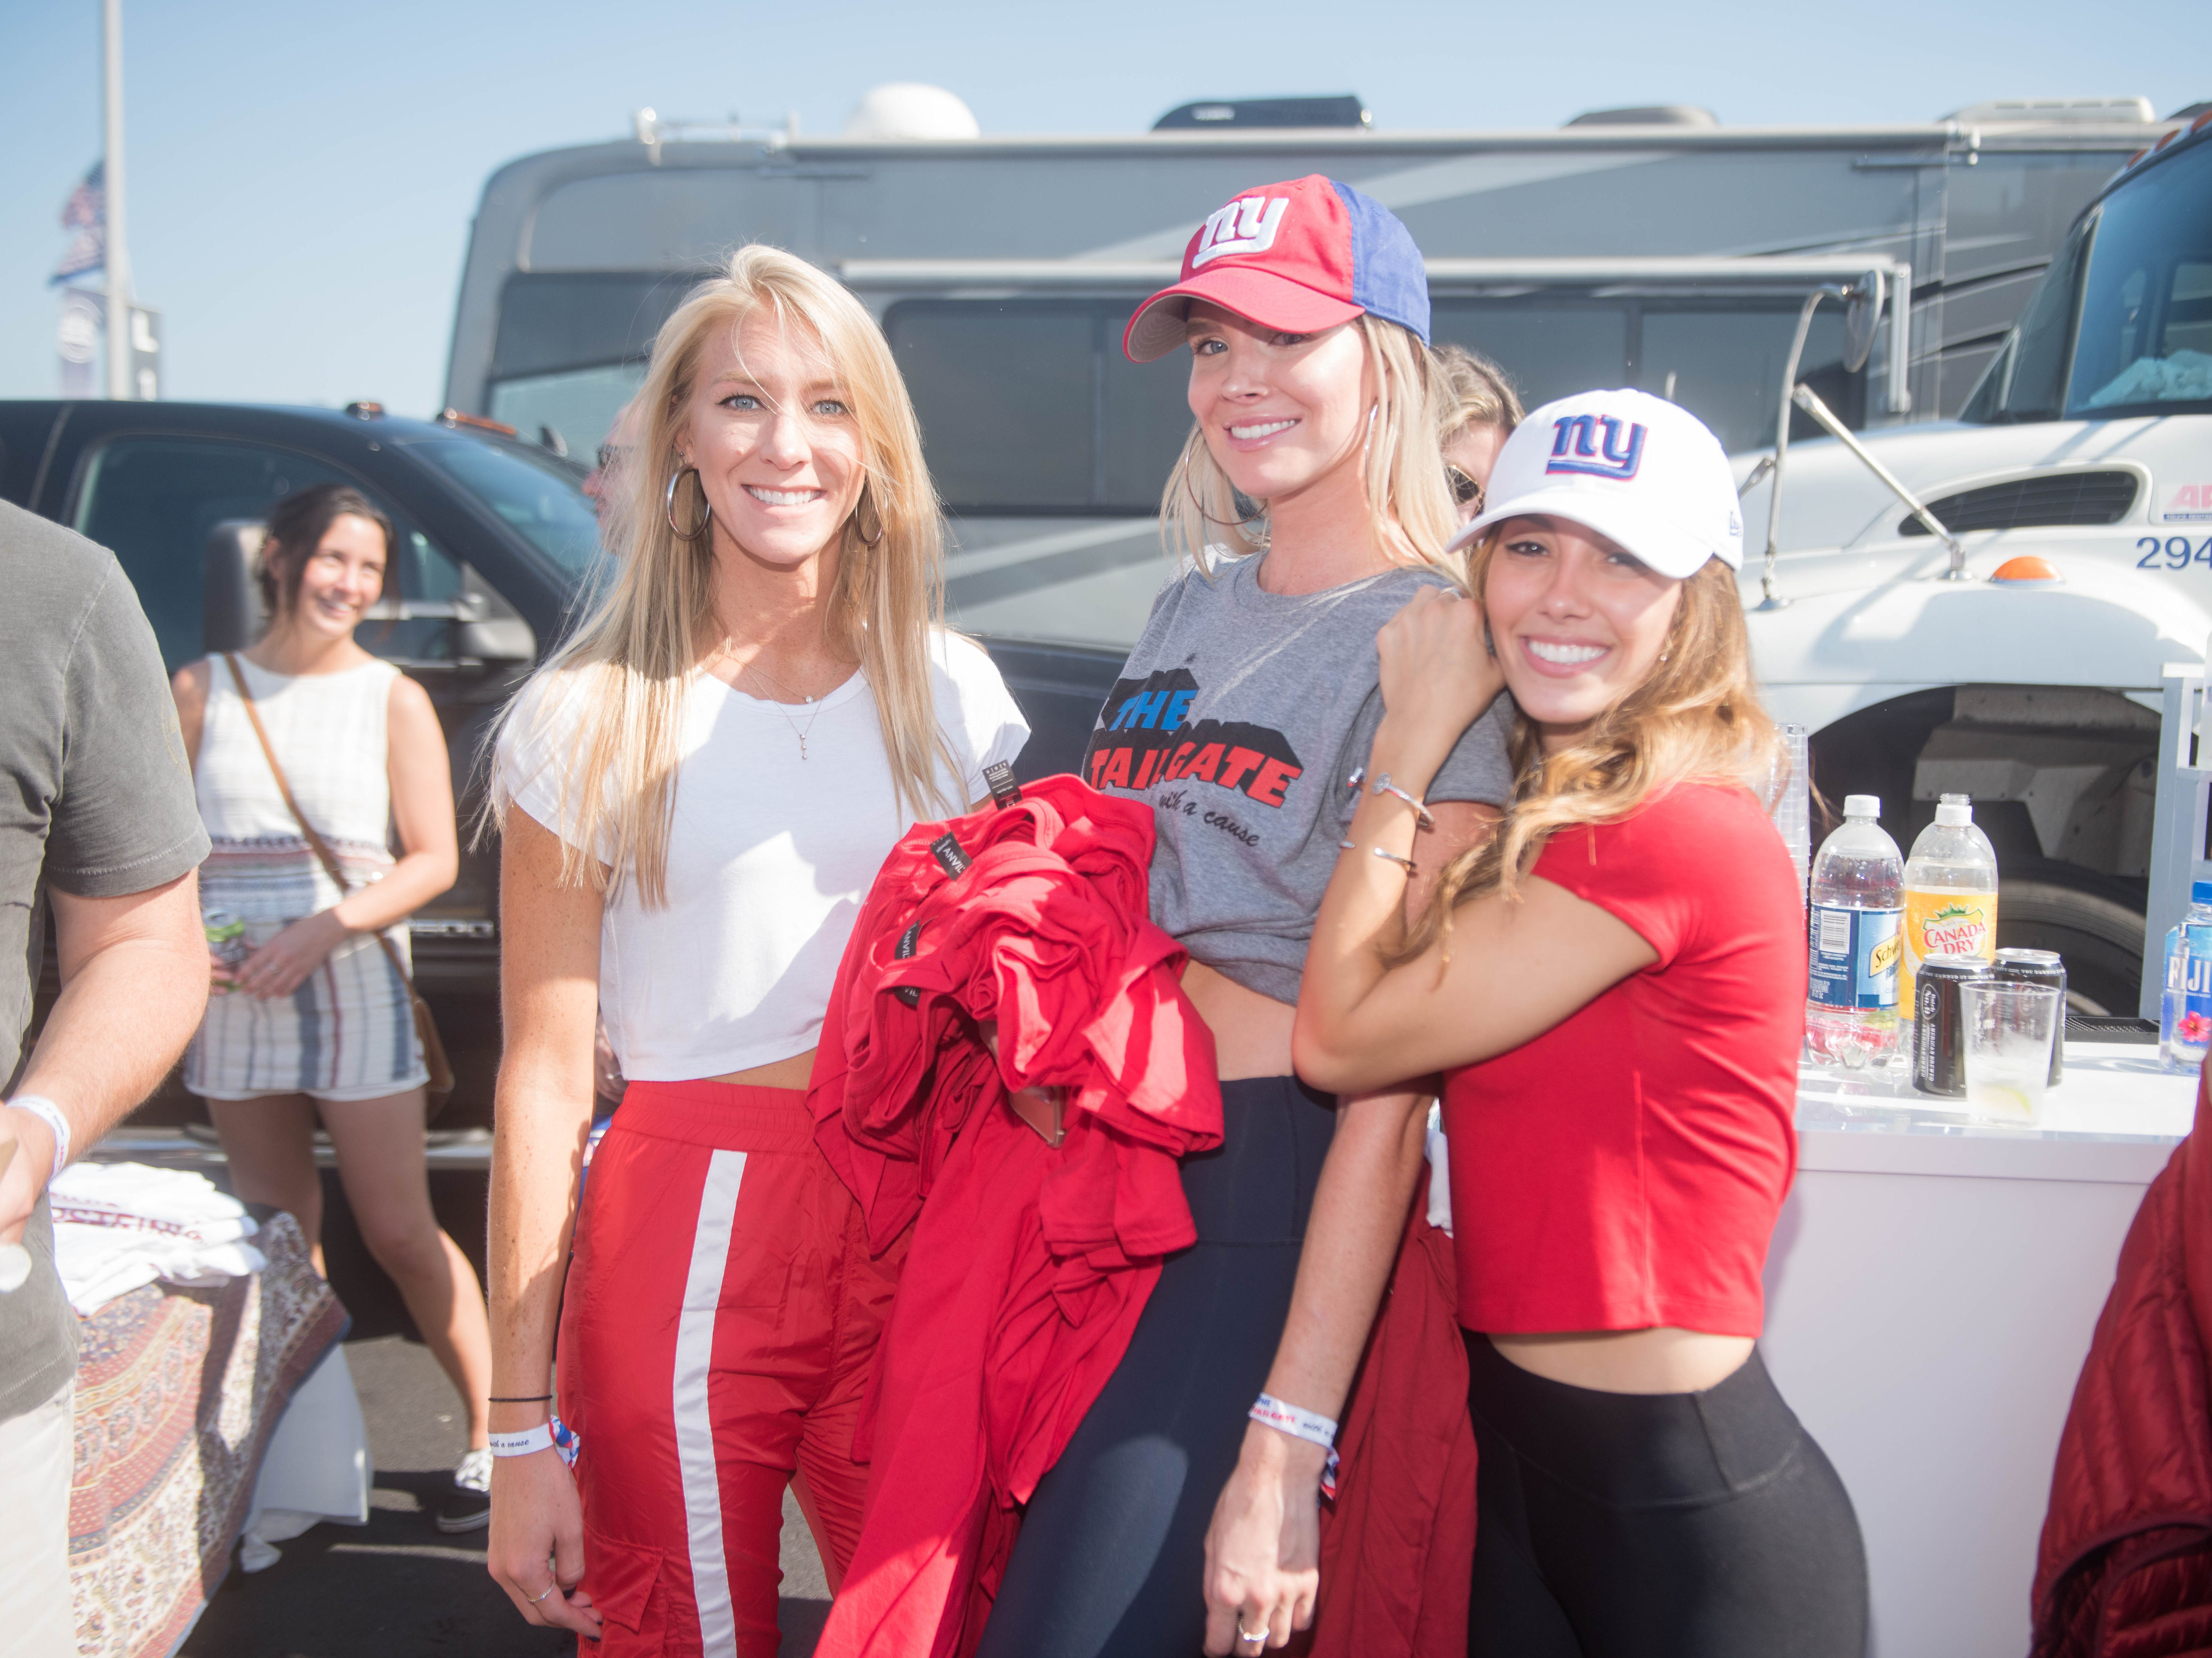 Emily Botta, Maura Nestor and Alexa Buffalino at the Giants vs. Saints tailgate party, Sunday, Sept. 30, 2018.